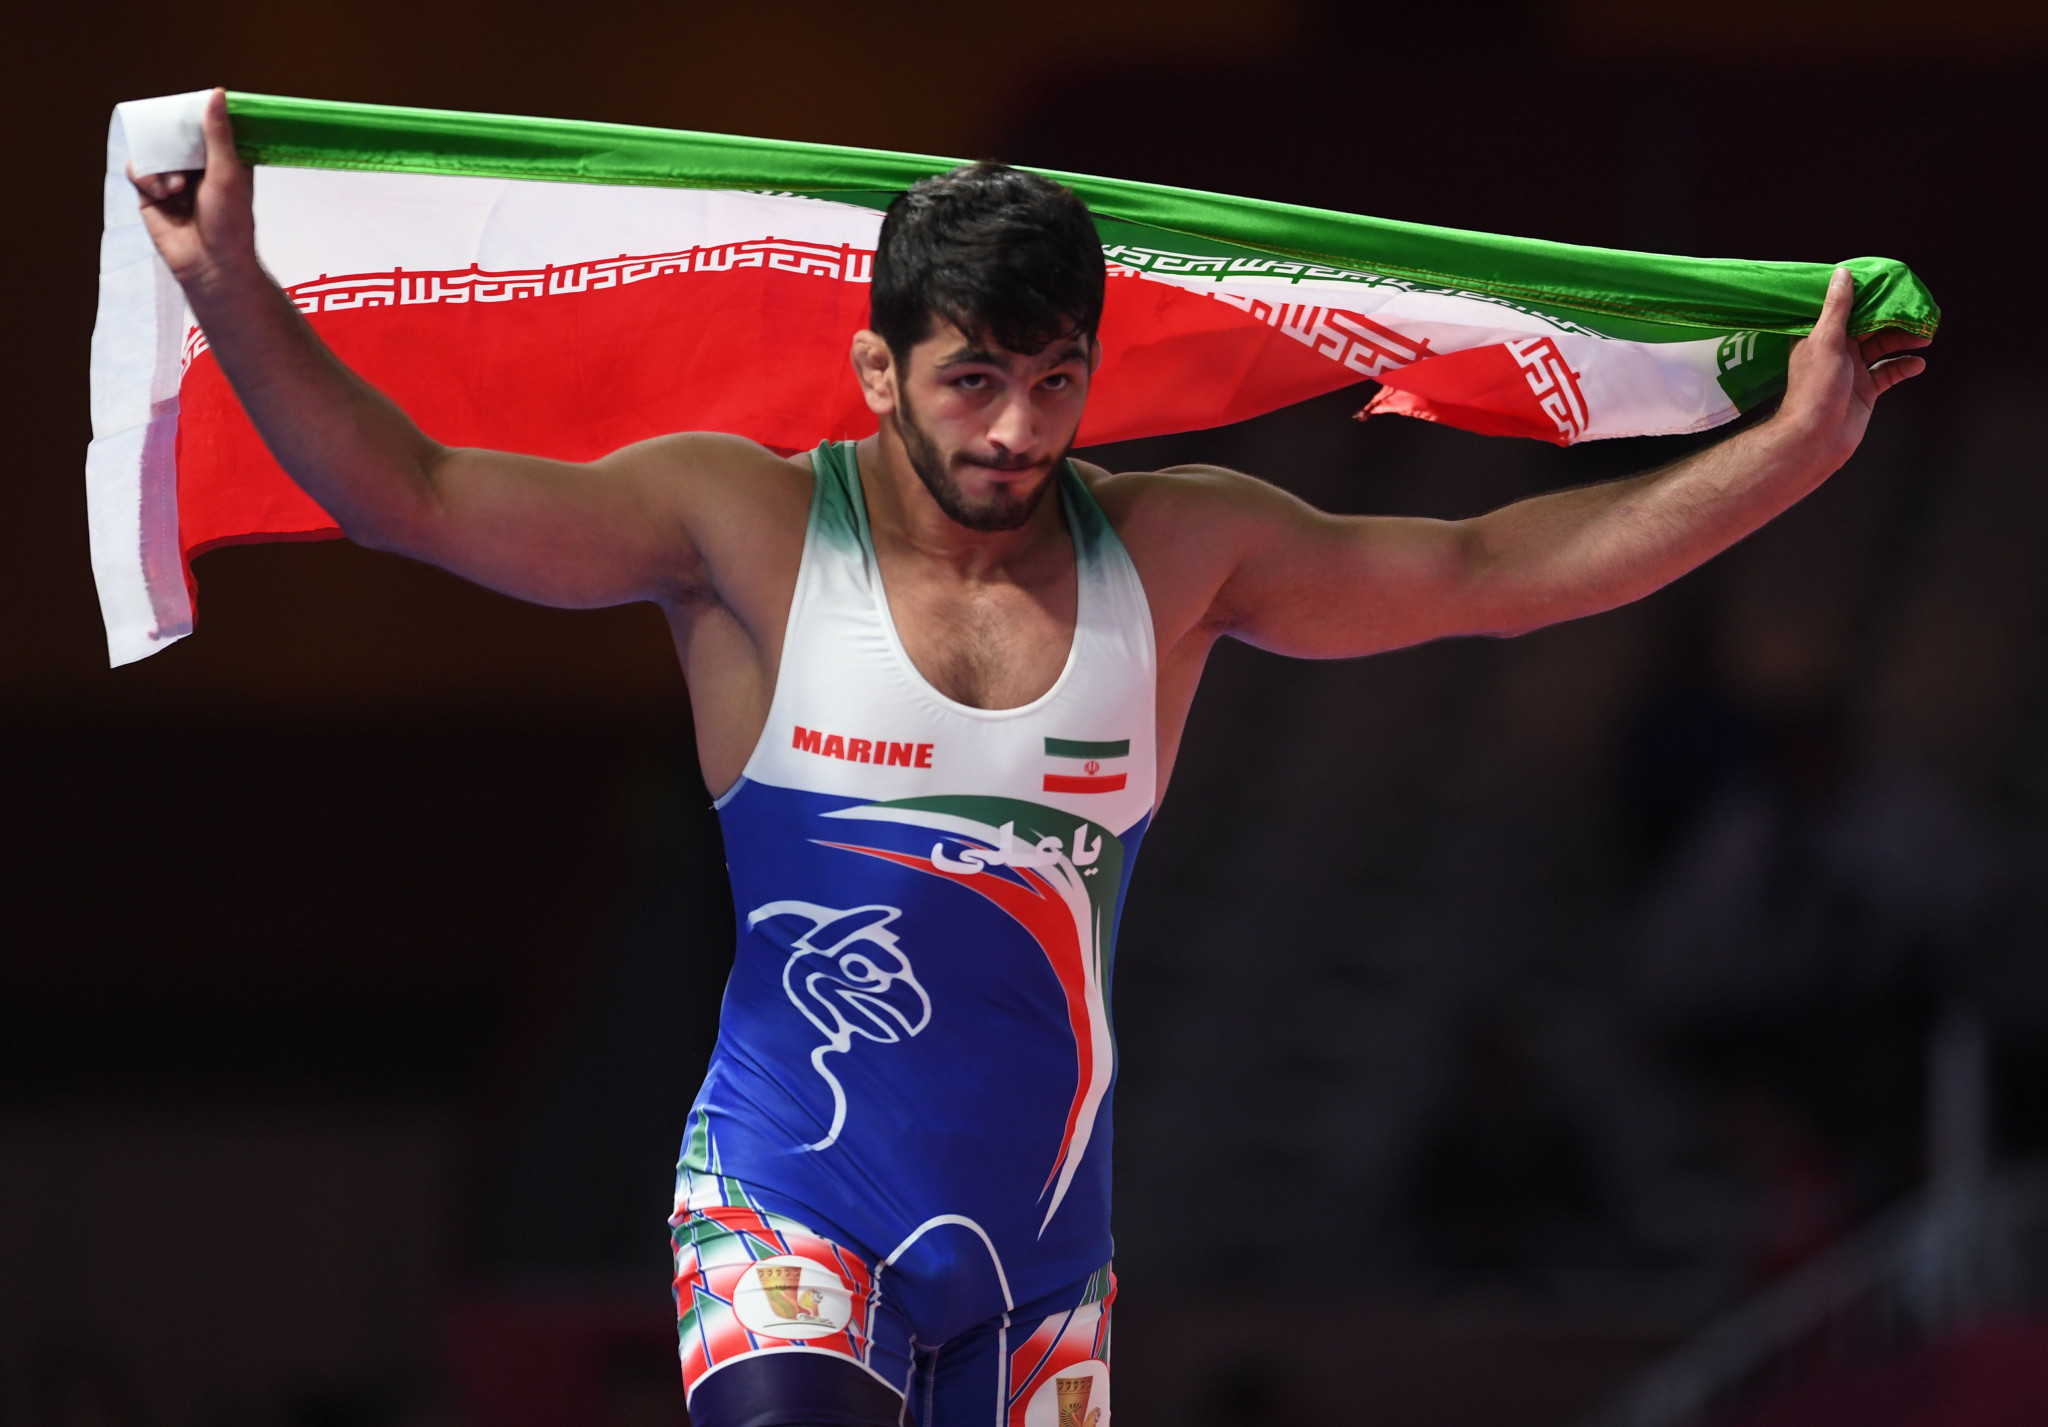 Iran's Olympic and world champion Hassan Yazdani heads the men's 86kg field ©Getty Images